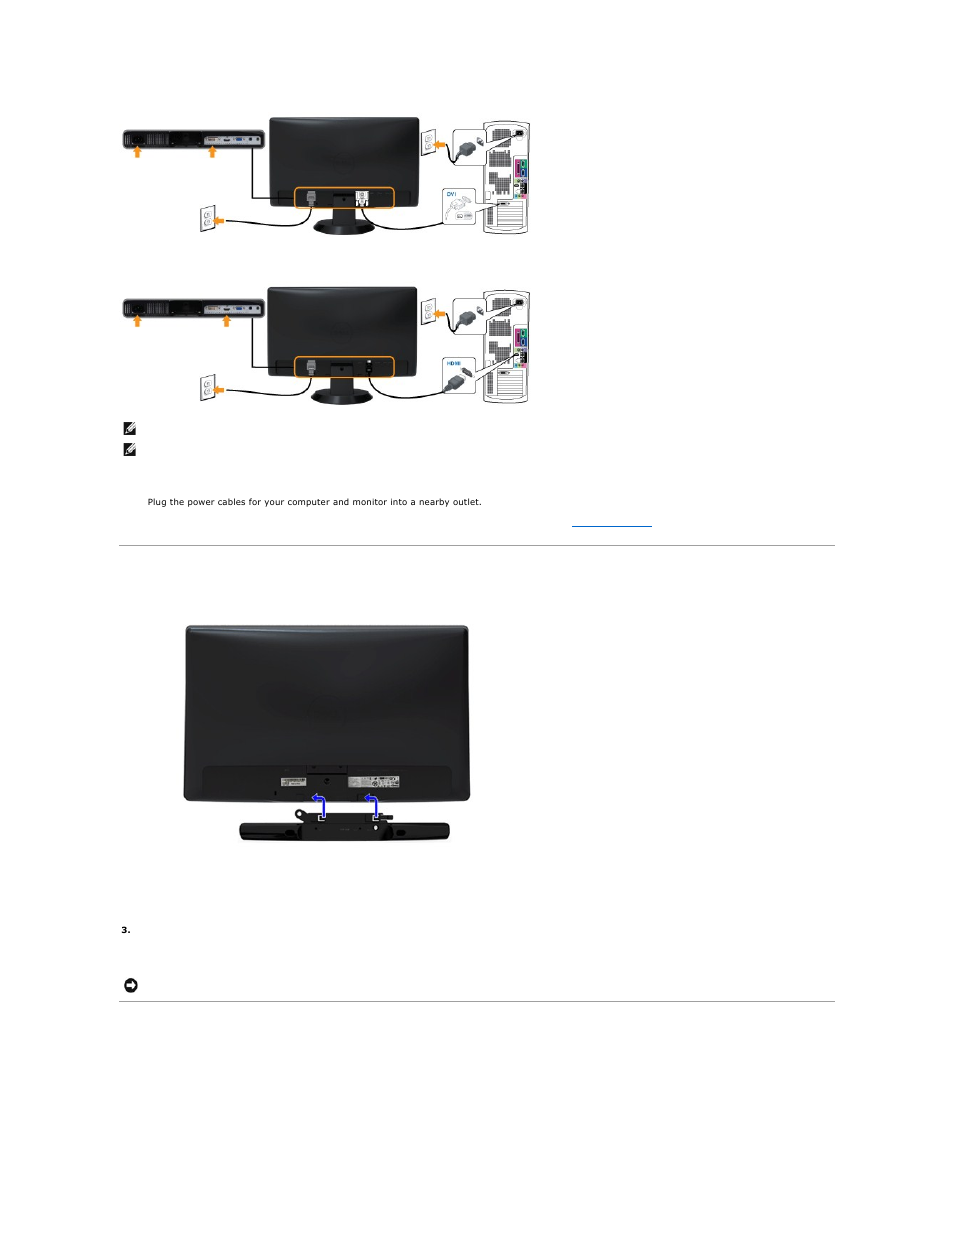 Attaching The Soundbar Optional Removing Base Connecting Wiring A 1 4 Out Put Jack Hdmi Cable Dell St2210b Monitor User Manual Page 28 33